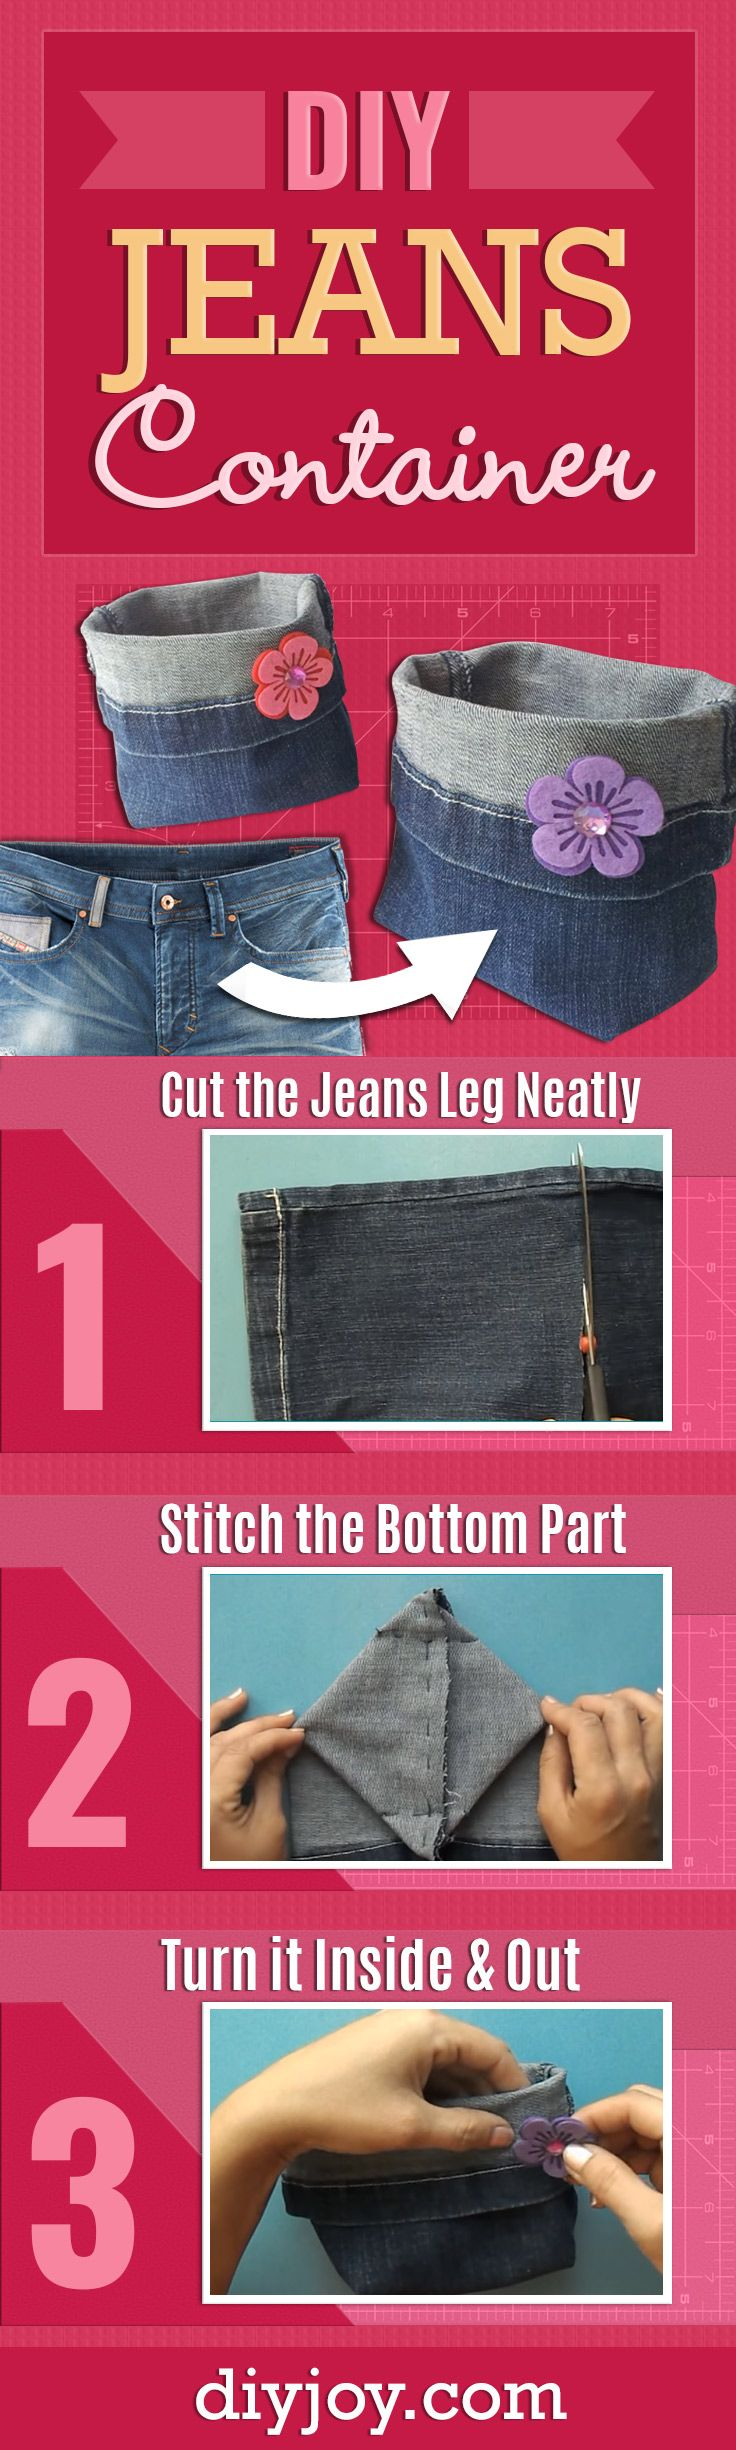 DIY Jeans Container - Cool DIY Projects and Crafts to Make From Old Denim Jeans - Easy Step by Step Sewing Tutorial for a Cool DIY Christmas Gift Idea - DIY Projects and Crafts for Women